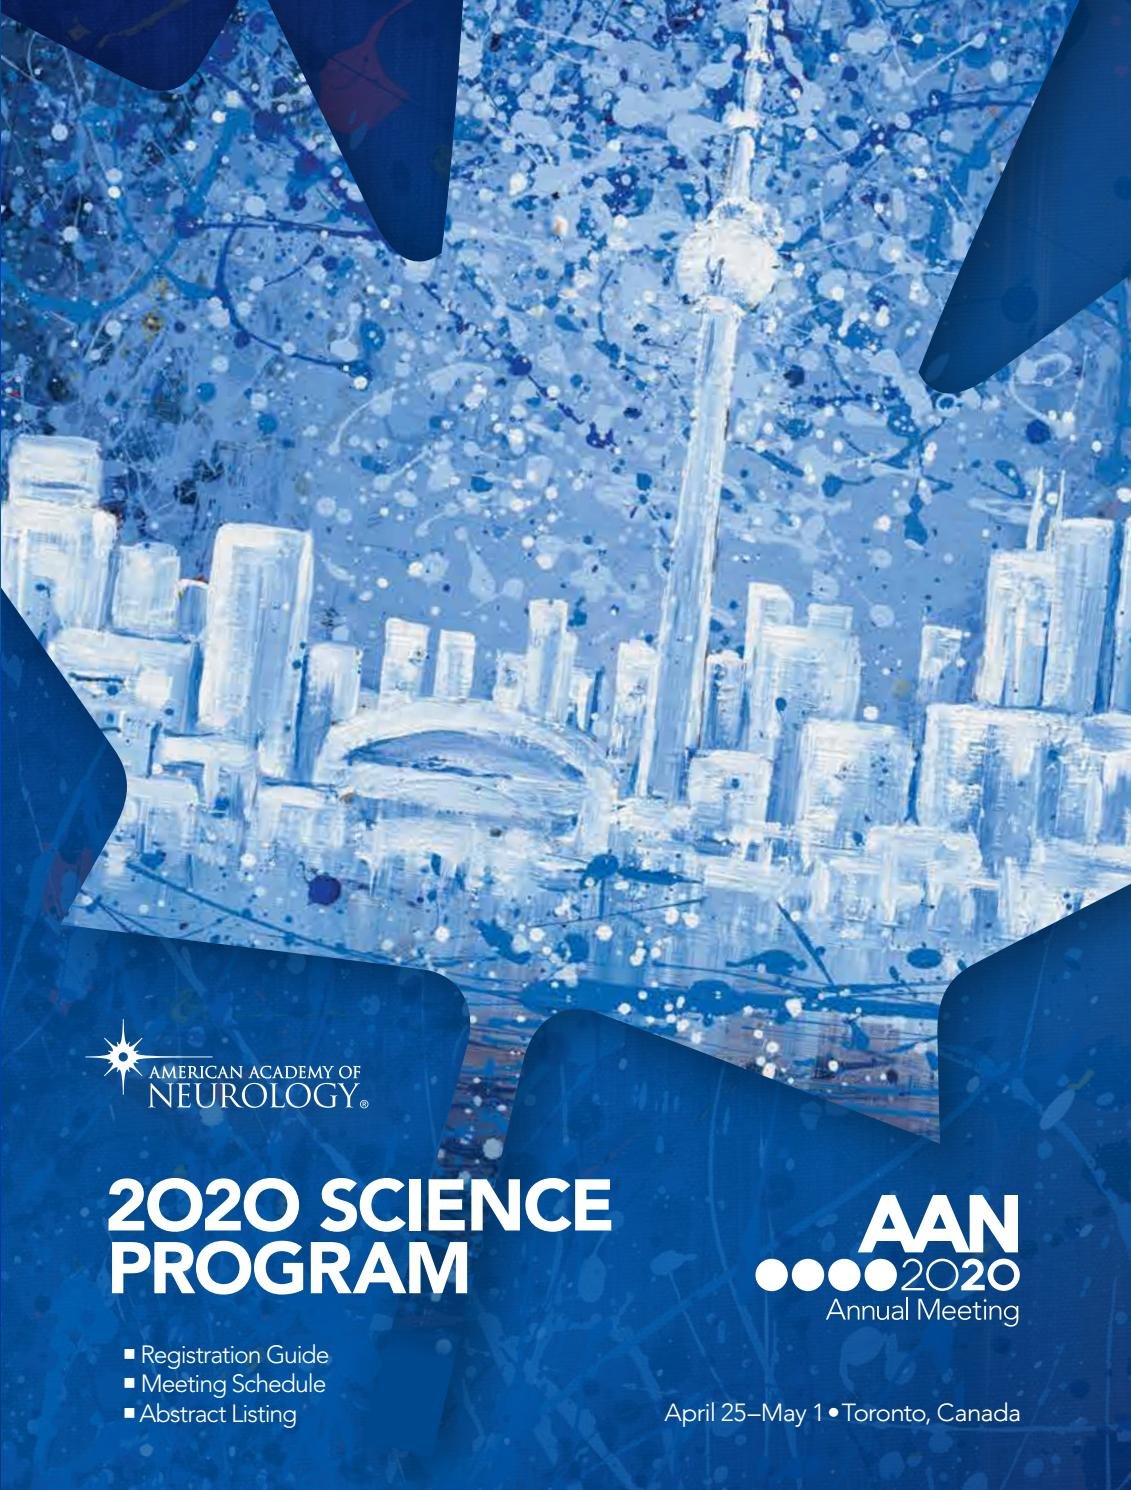 2020 Aan Annual Meeting Science Program By American Academy Of Neurology Issuu